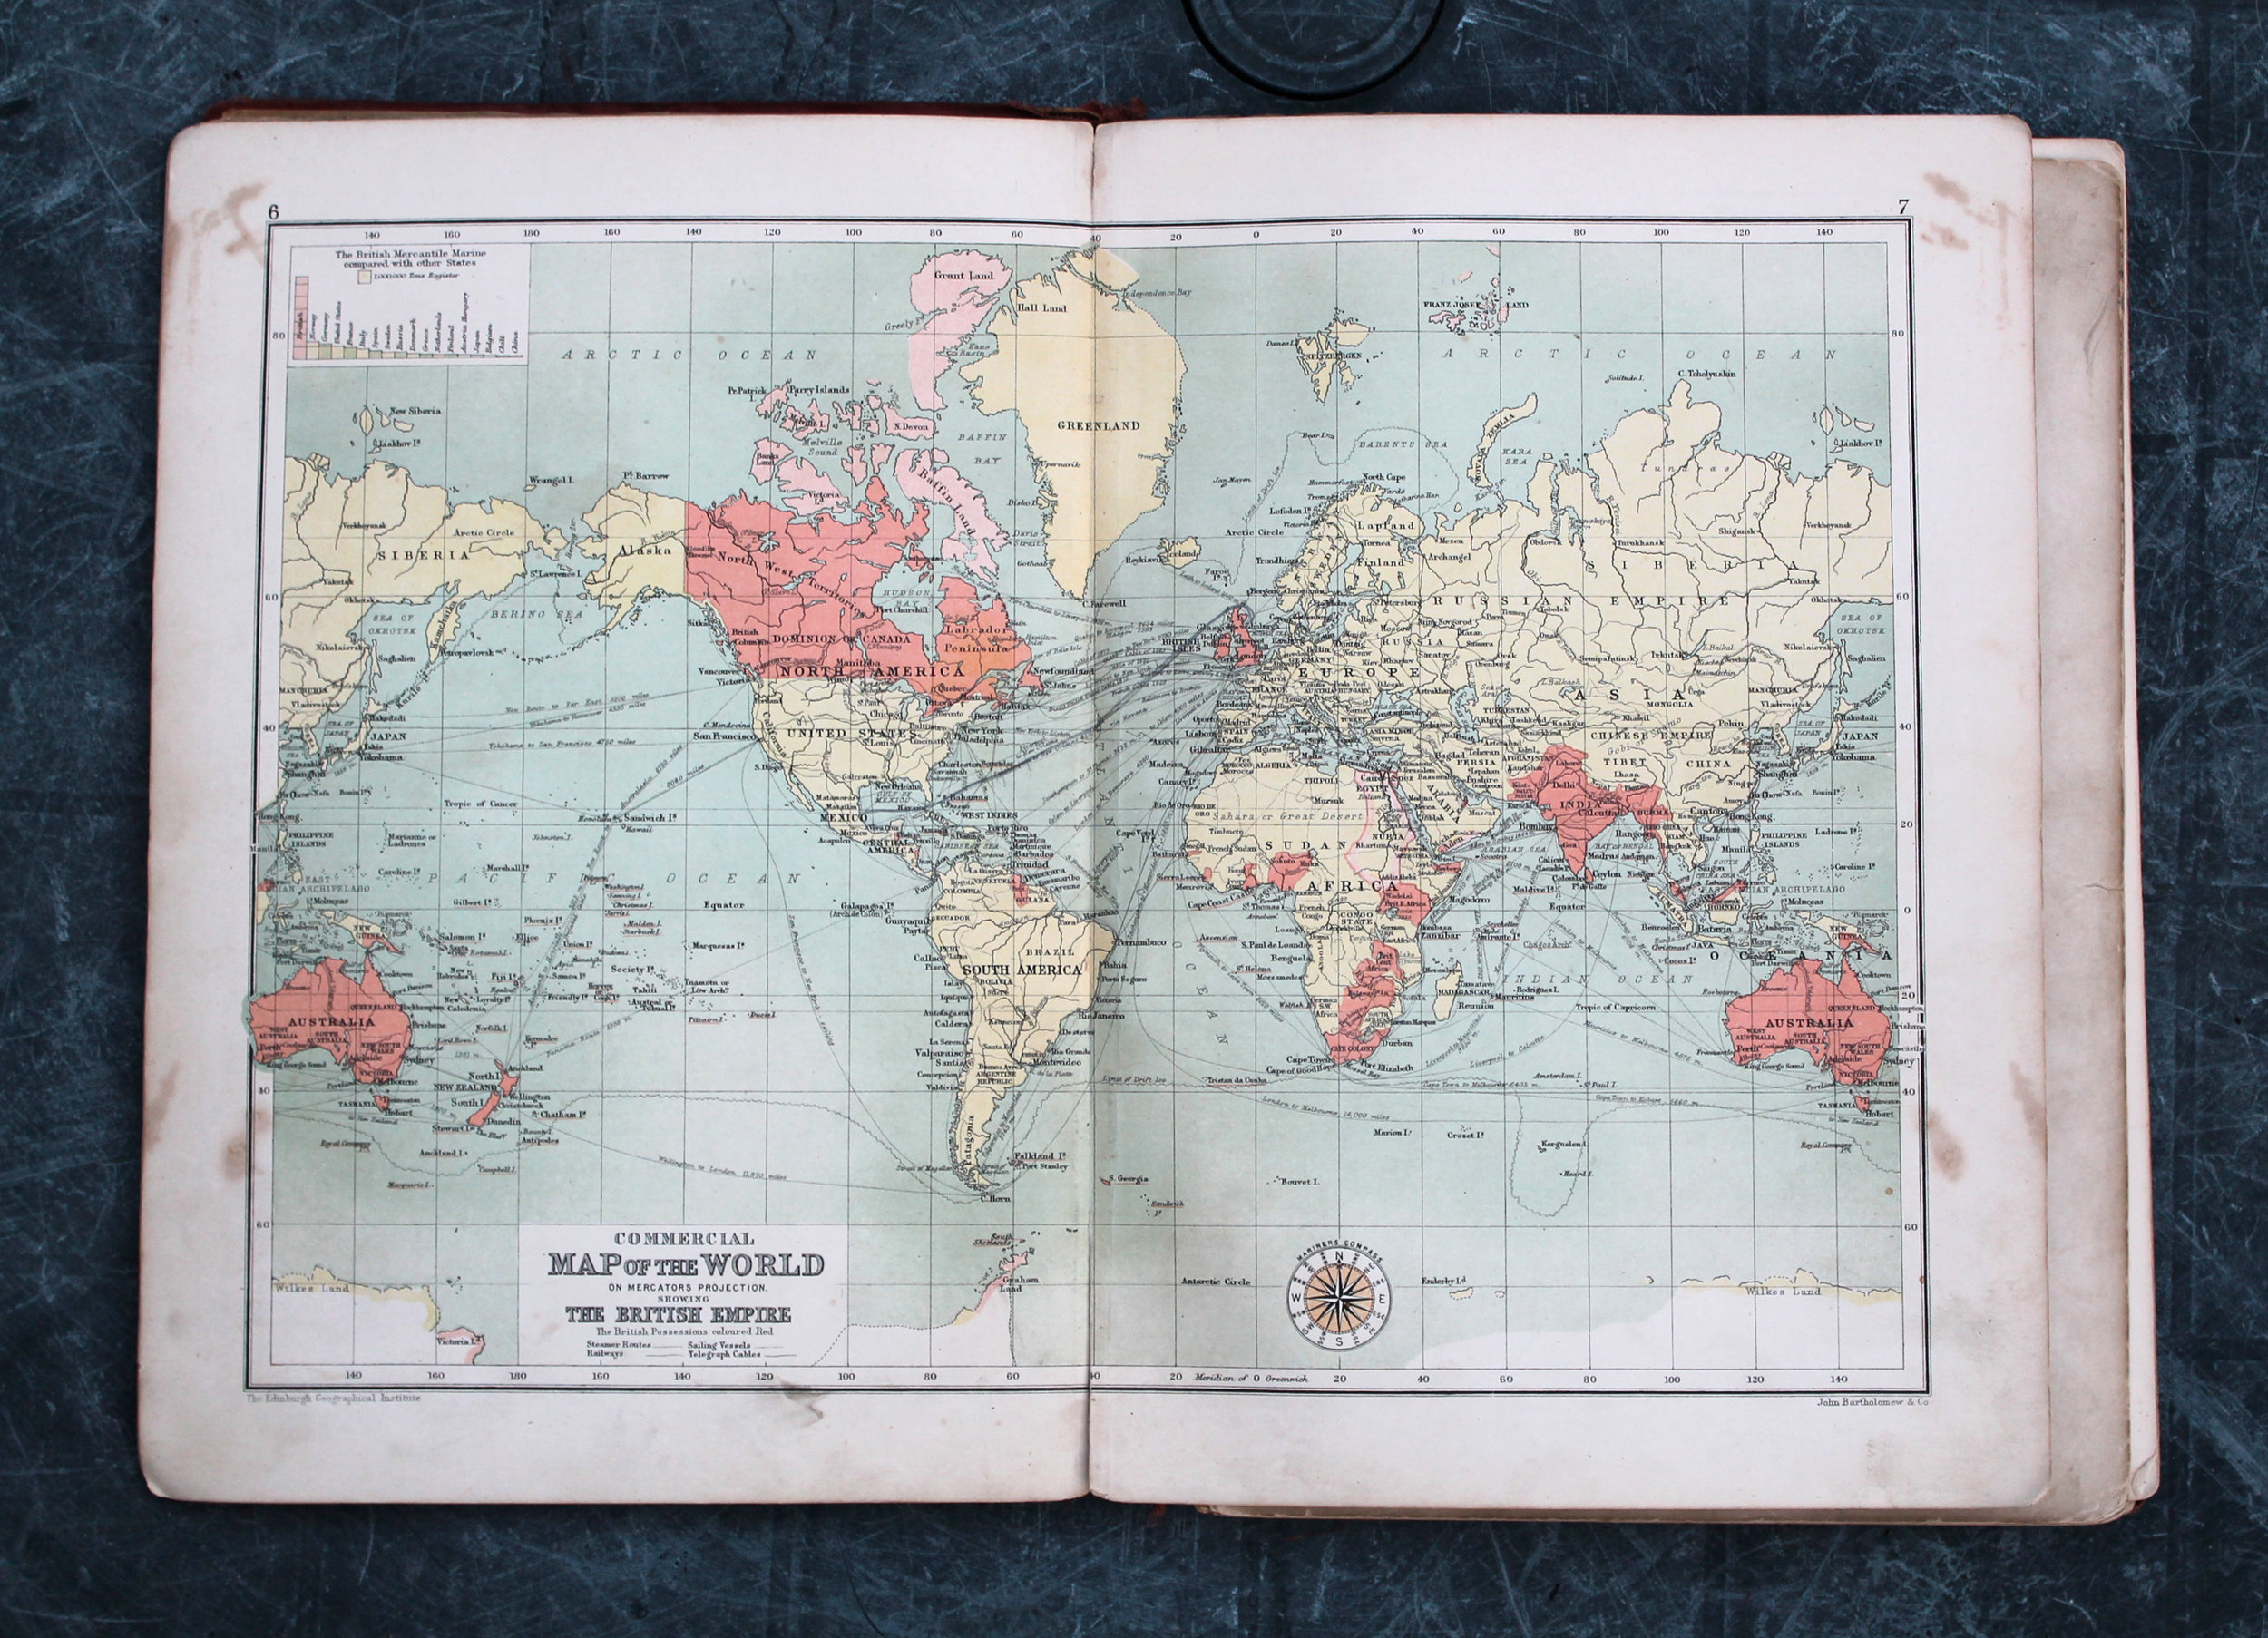 An old book of maps that the style was based upon.